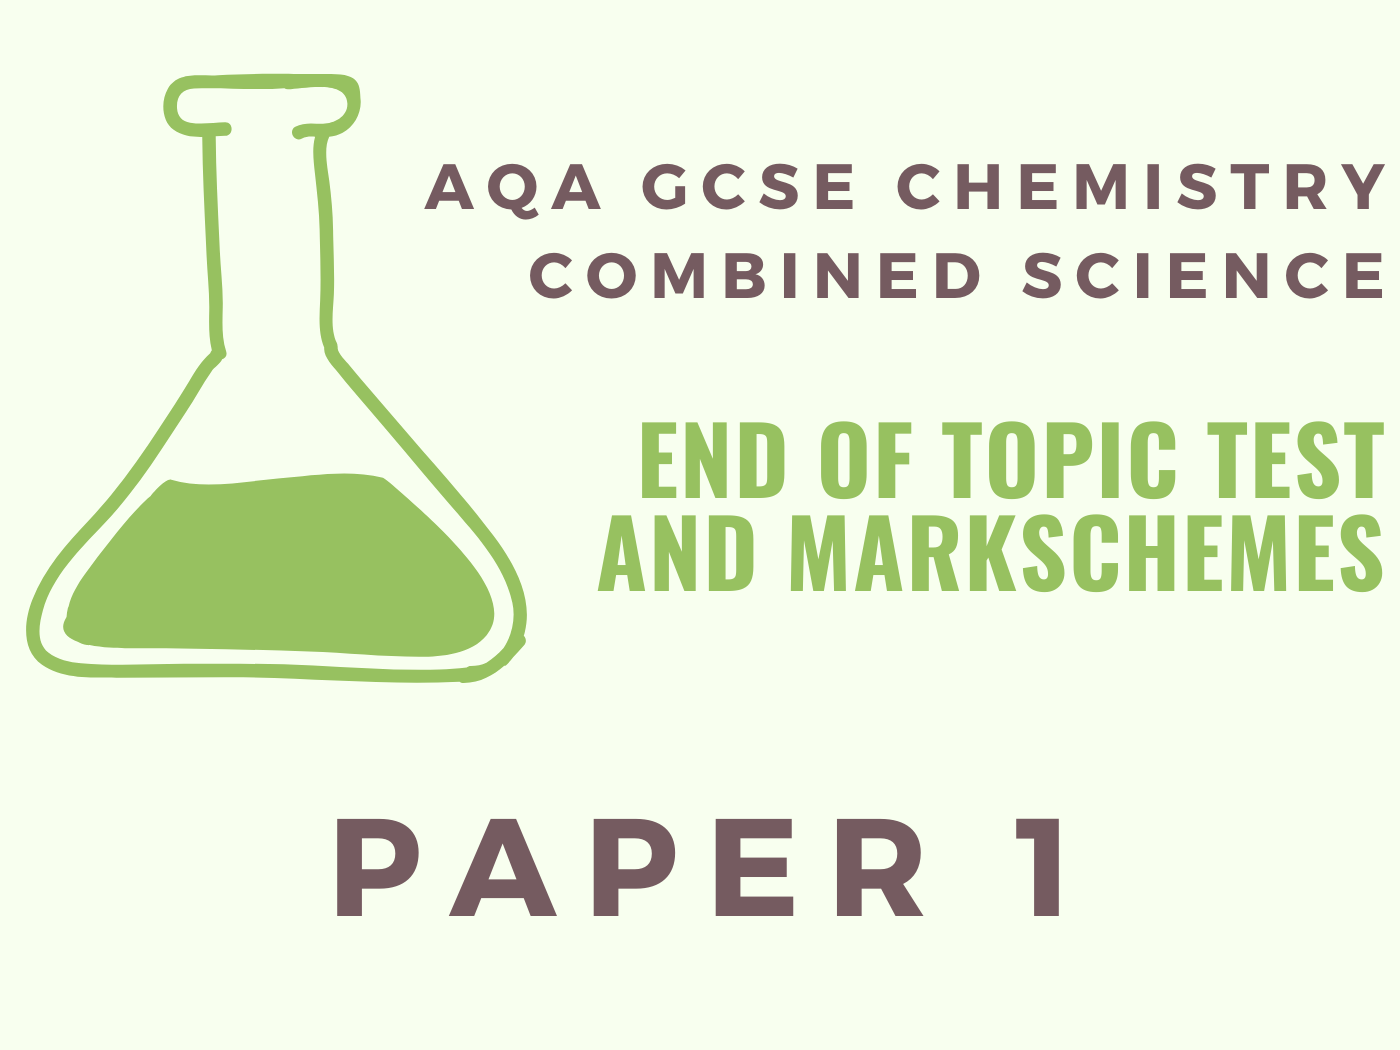 AQA GCSE Chemistry Paper 1 End of Topic Tests